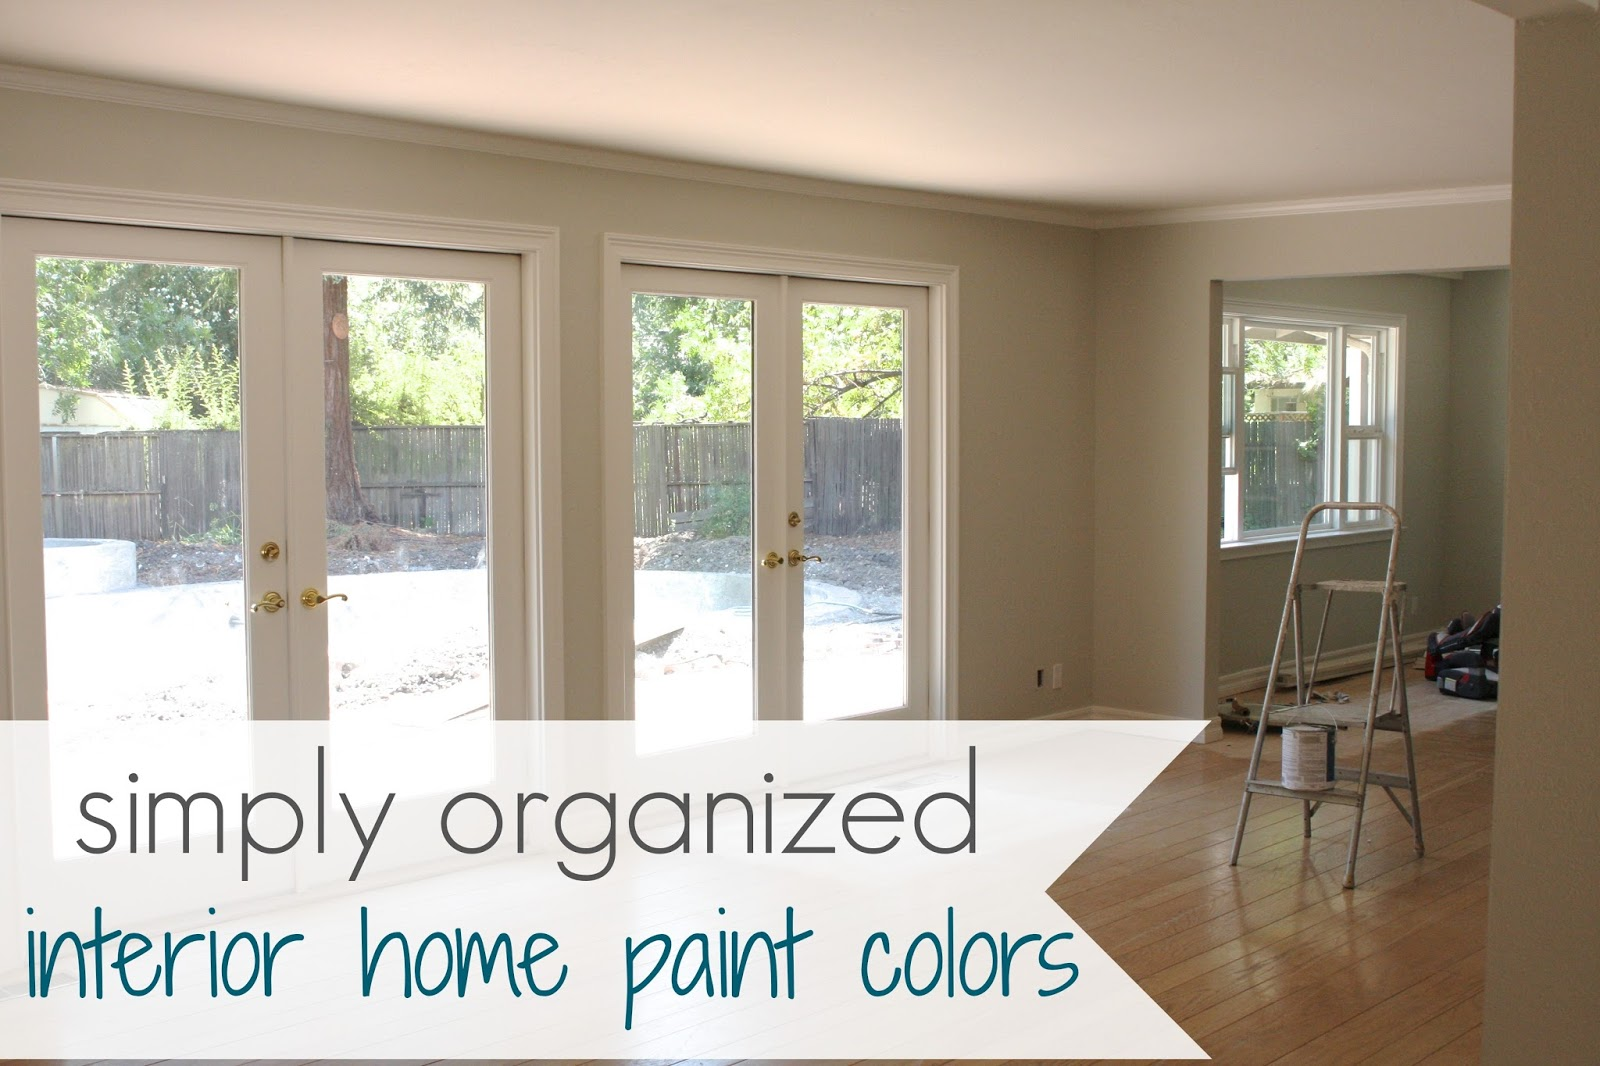 My home interior paint color palate simply organized - Paint colors for home interior ...